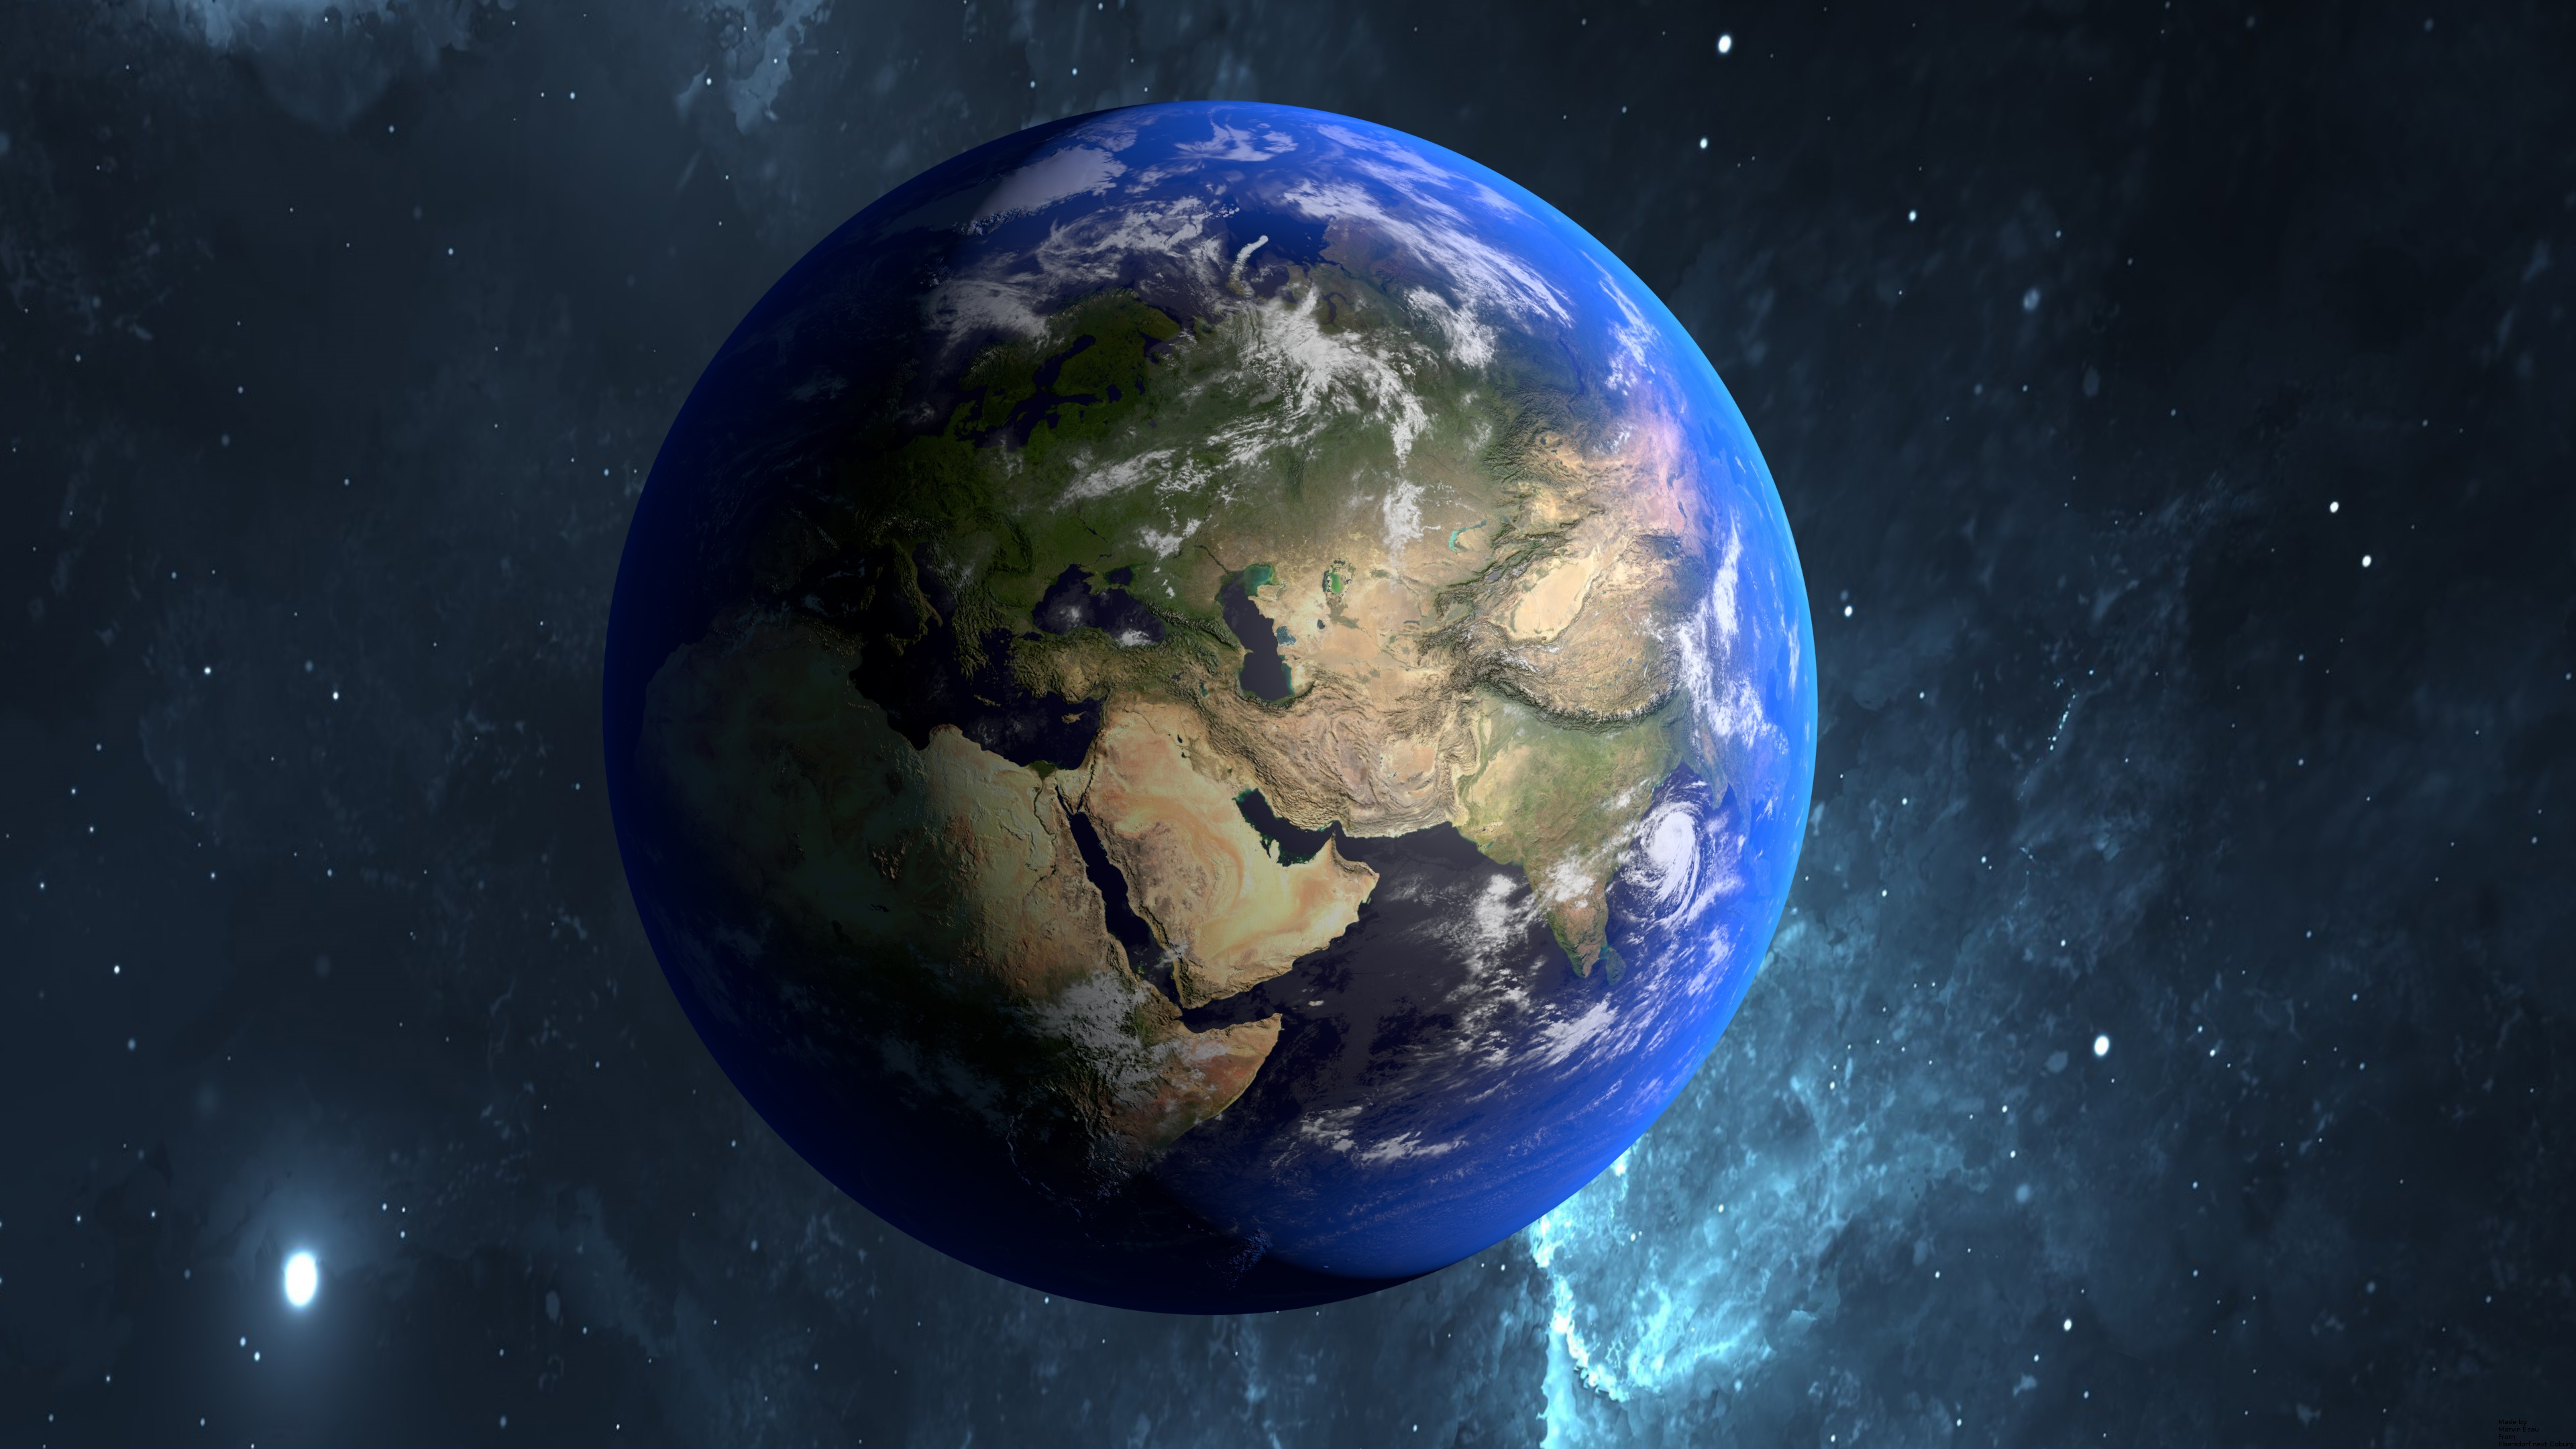 Beautiful Blue Planet Earth Wallpaper 3840x2160 UHD 4K